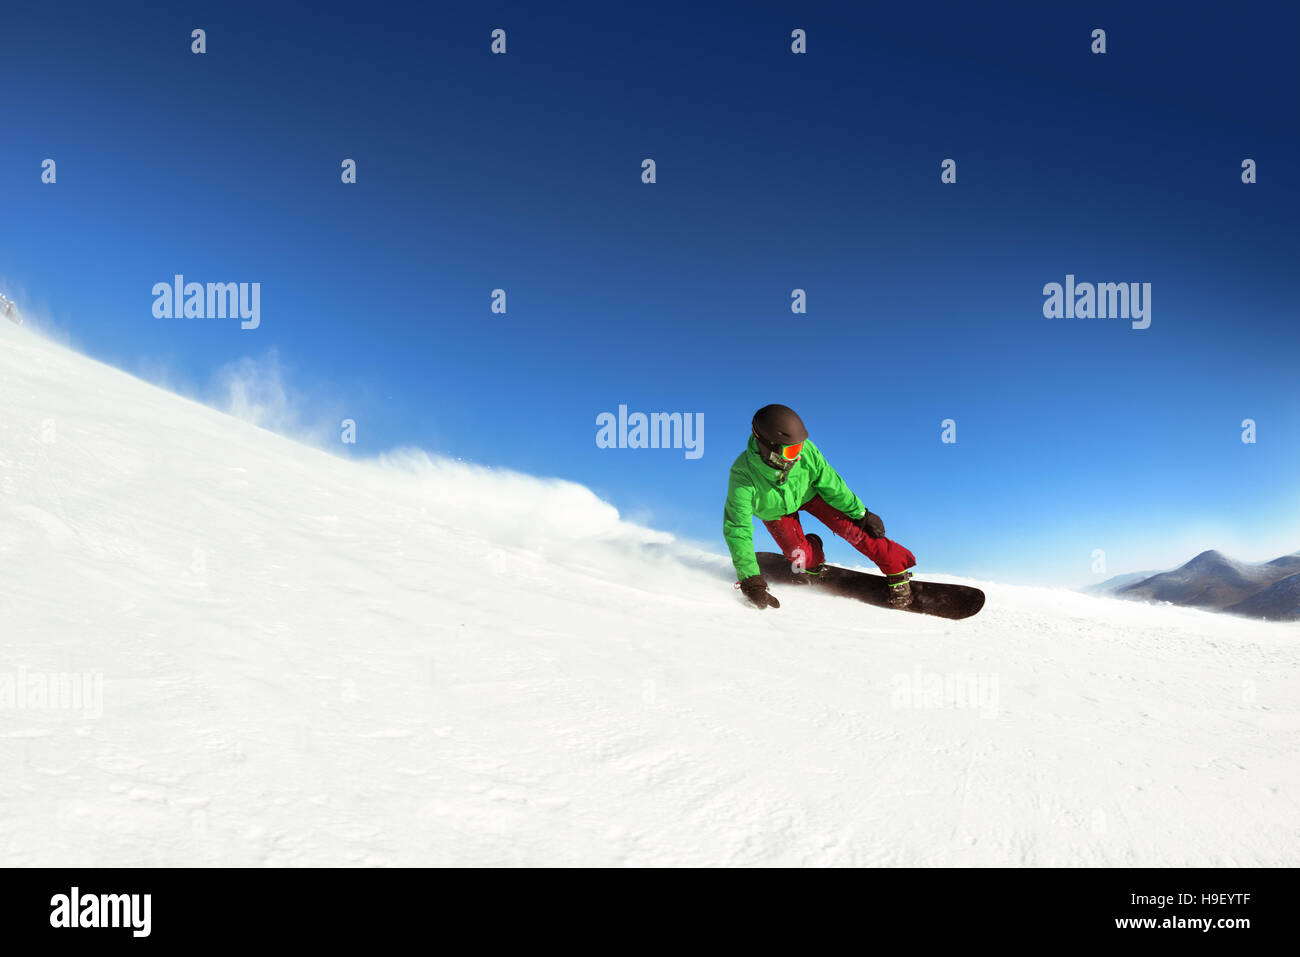 Man snowboarder rides slope sheregesh. Space for text - Stock Image